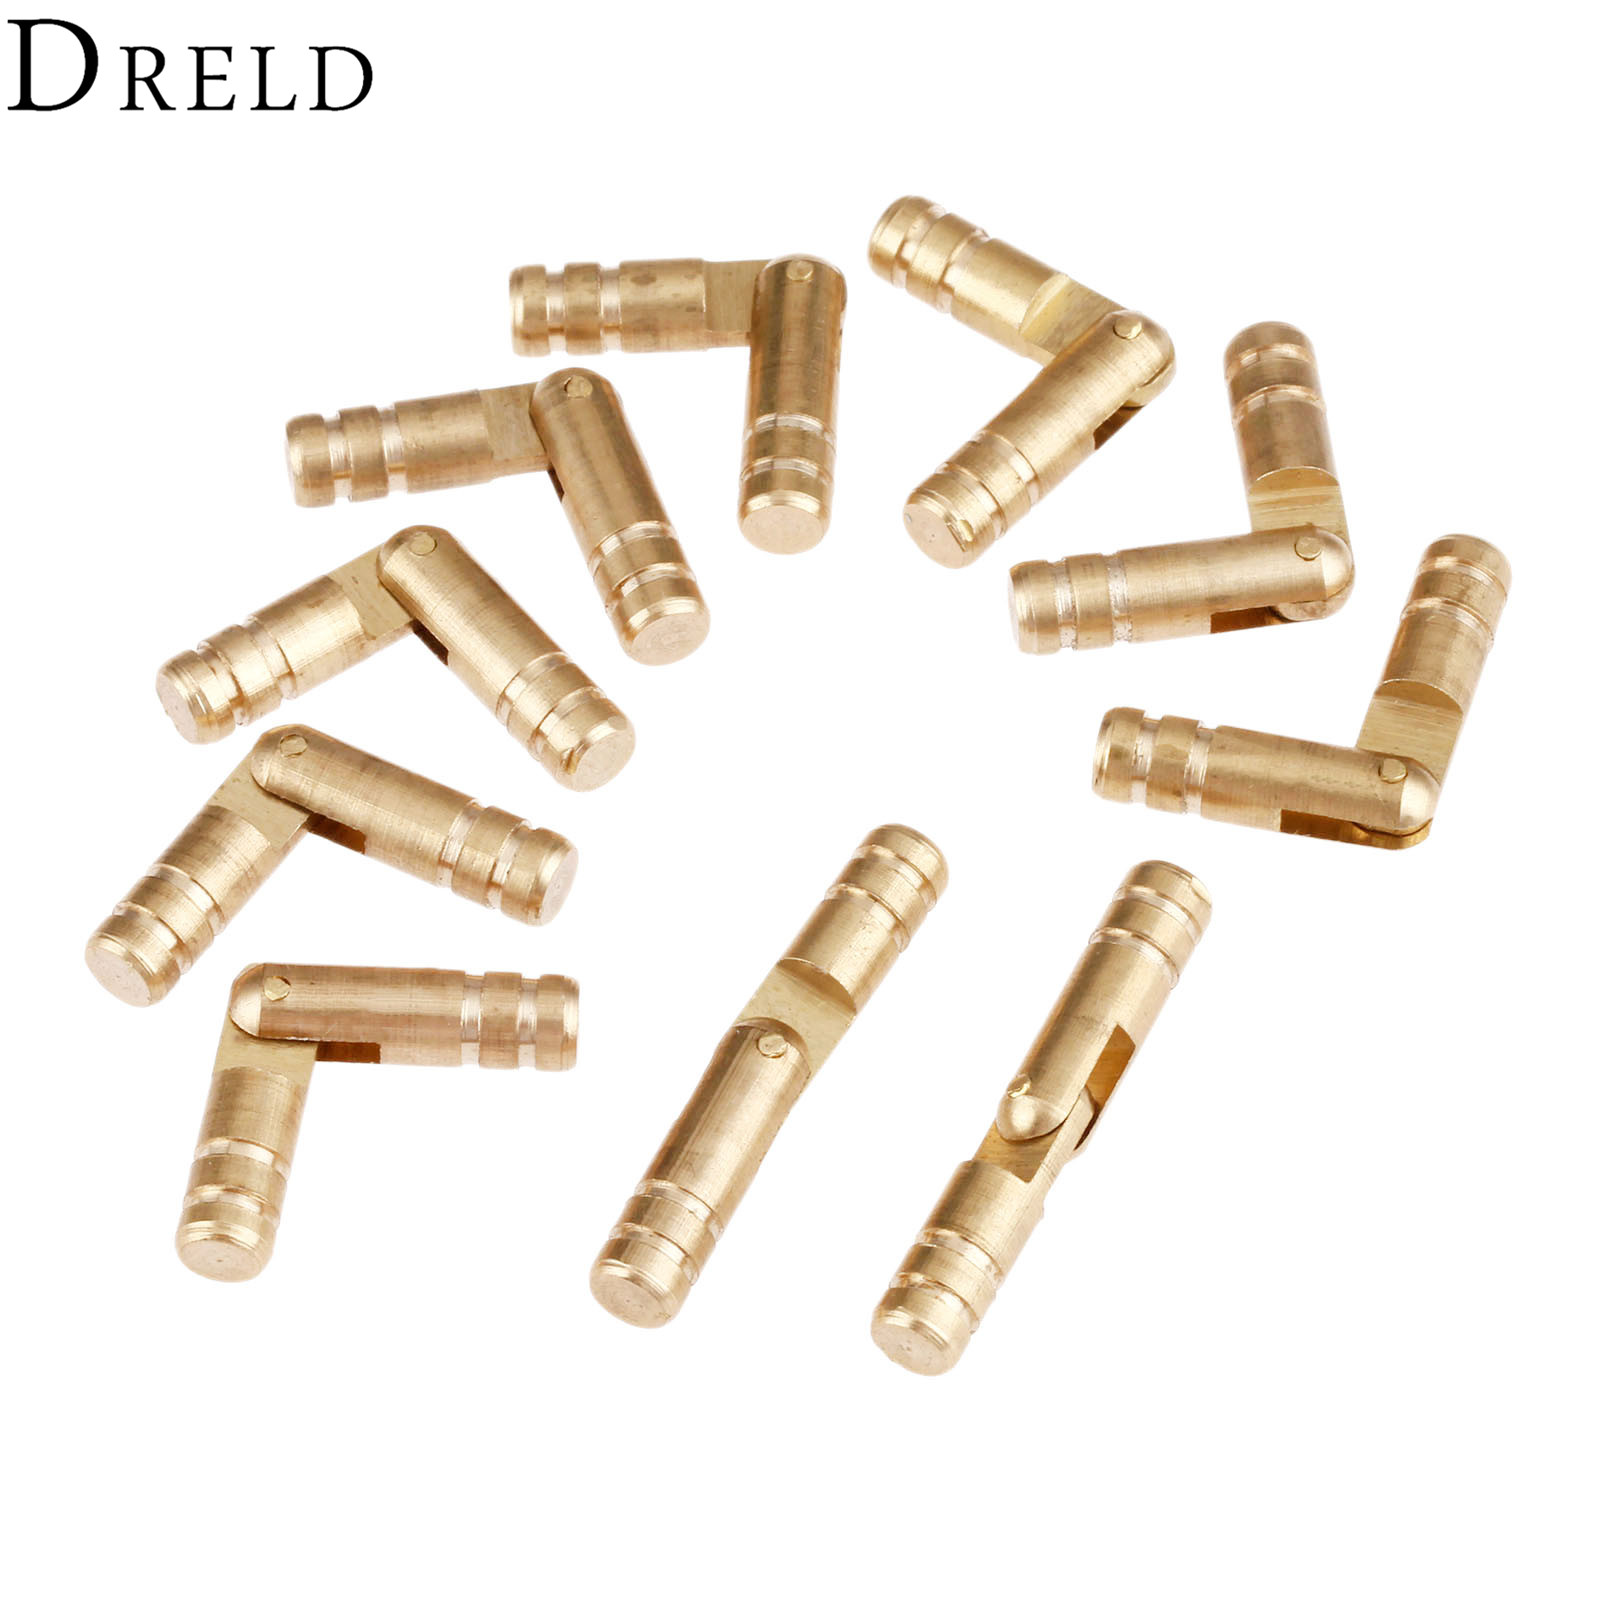 DRELD 10Pcs Pure Copper Brass Wine Jewelry Box Hidden Invisible Concealed Barrel Hinge for Furniture Finely Machined Mechanisms  10pc pure gold copper brass wine jewelry box hidden invisible concealed barrel hinge finely machined mechanisms